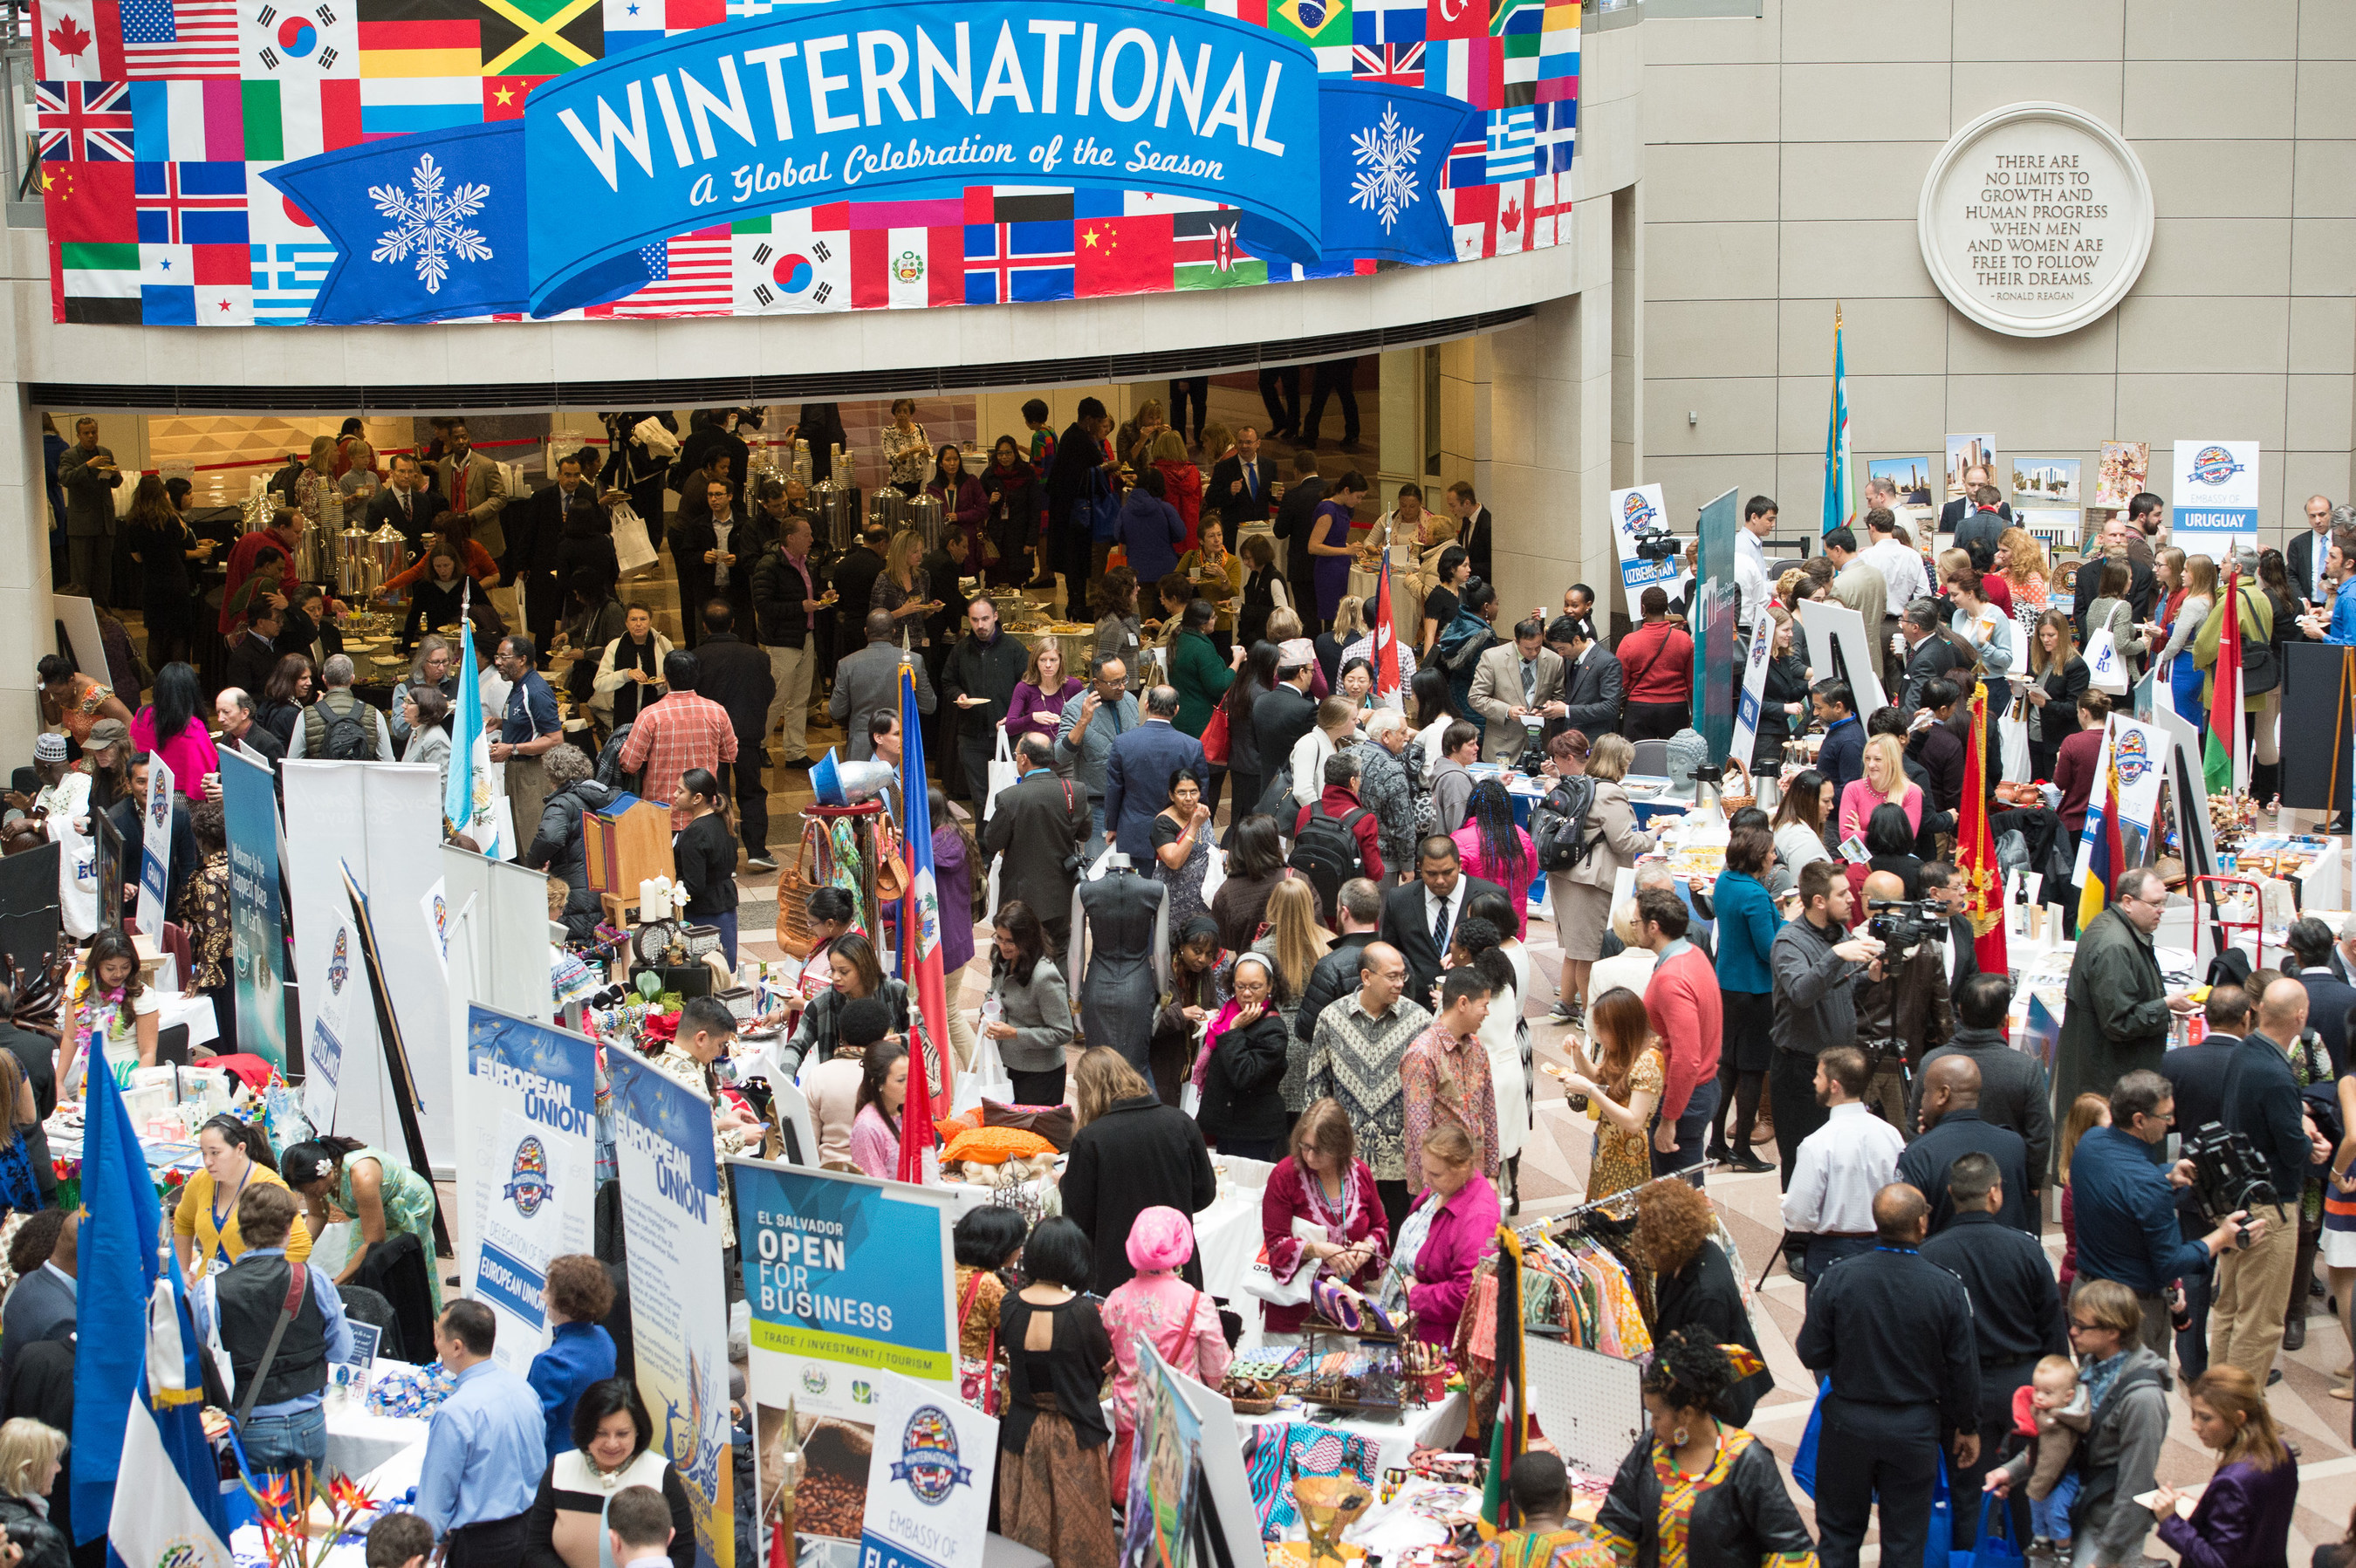 2500 Visitors Participate in Winternational, the 4th Annual Embassy Showcase featuring 34 embassies, at the Ronald Reagan Building and International Trade Center.